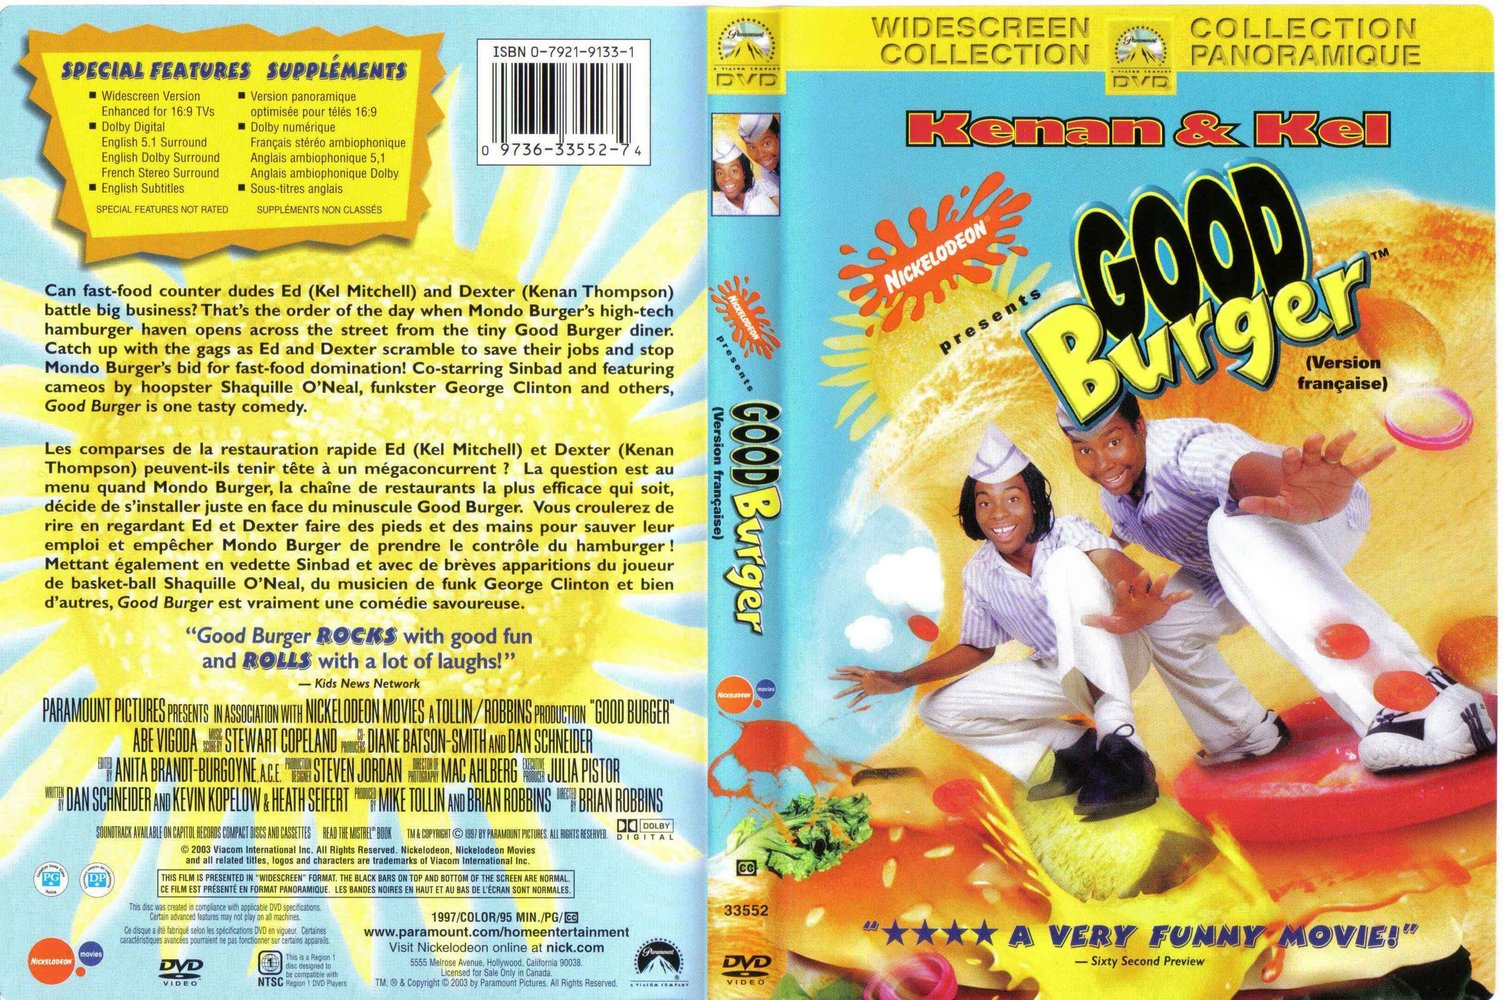 Famous Book Quotes Wallpaper Good Burger Images Good Burger Cover Dvd Hd Wallpaper And